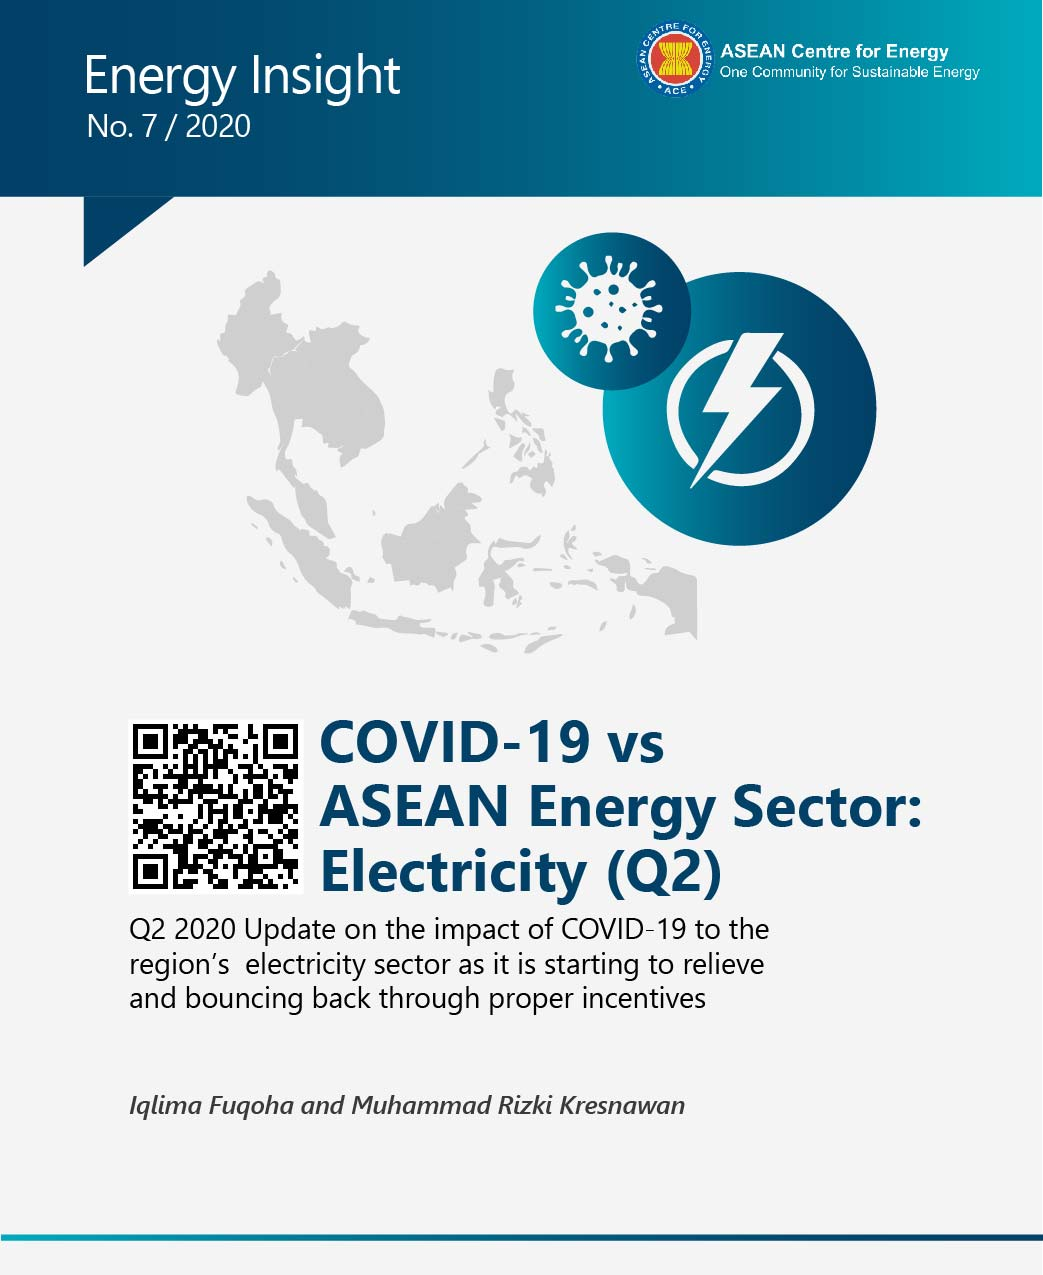 Q2 COVID-19 vs ASEAN Energy Sector: Electricity